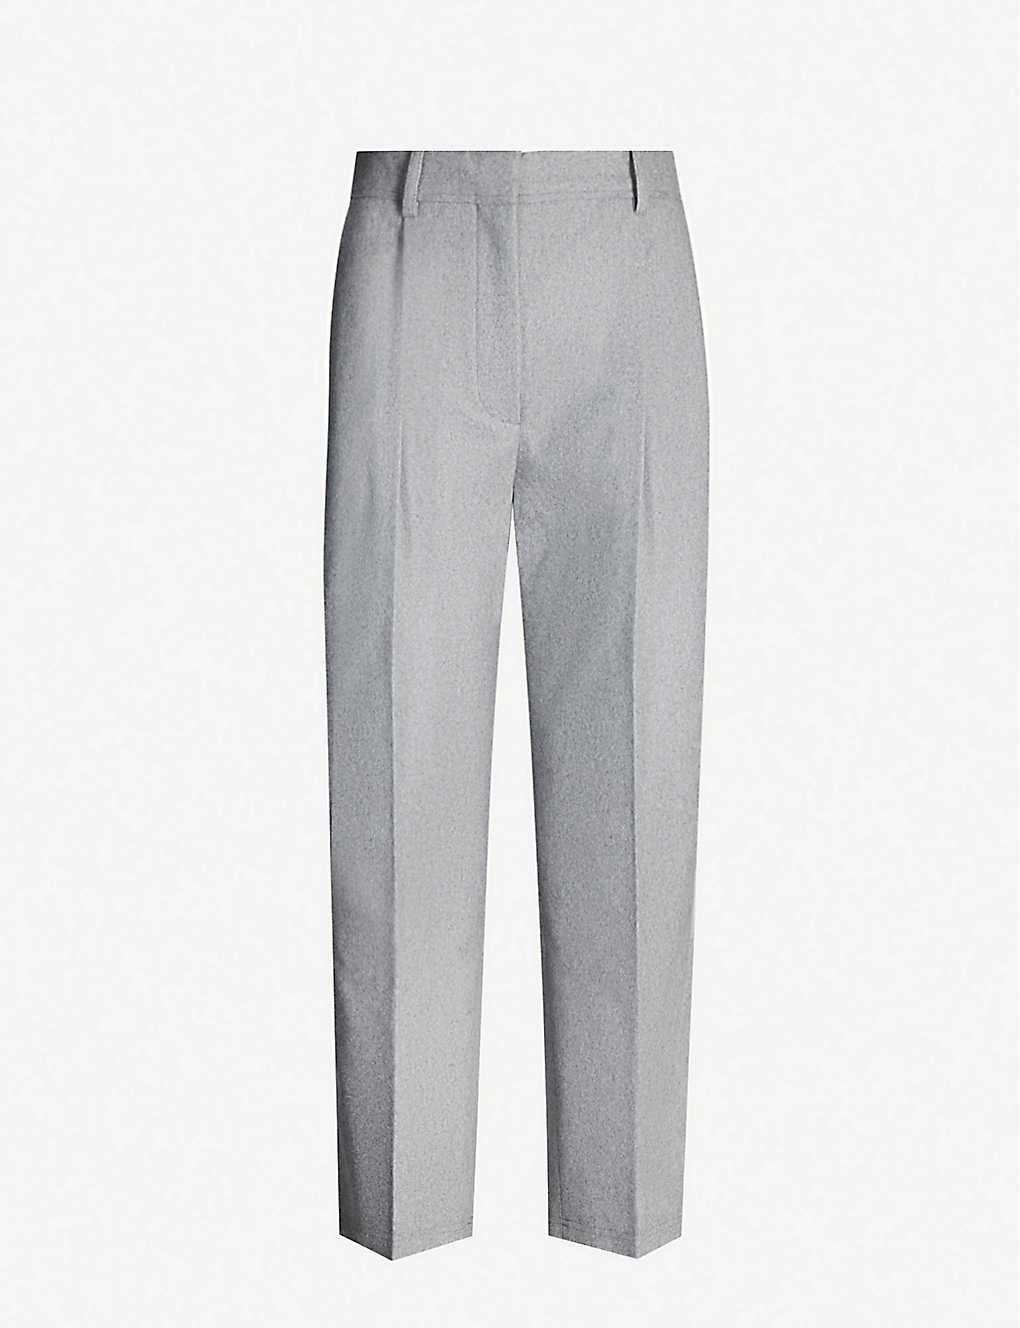 Acne Studios Pants Flannel tapered high-rise wool-blend trousers